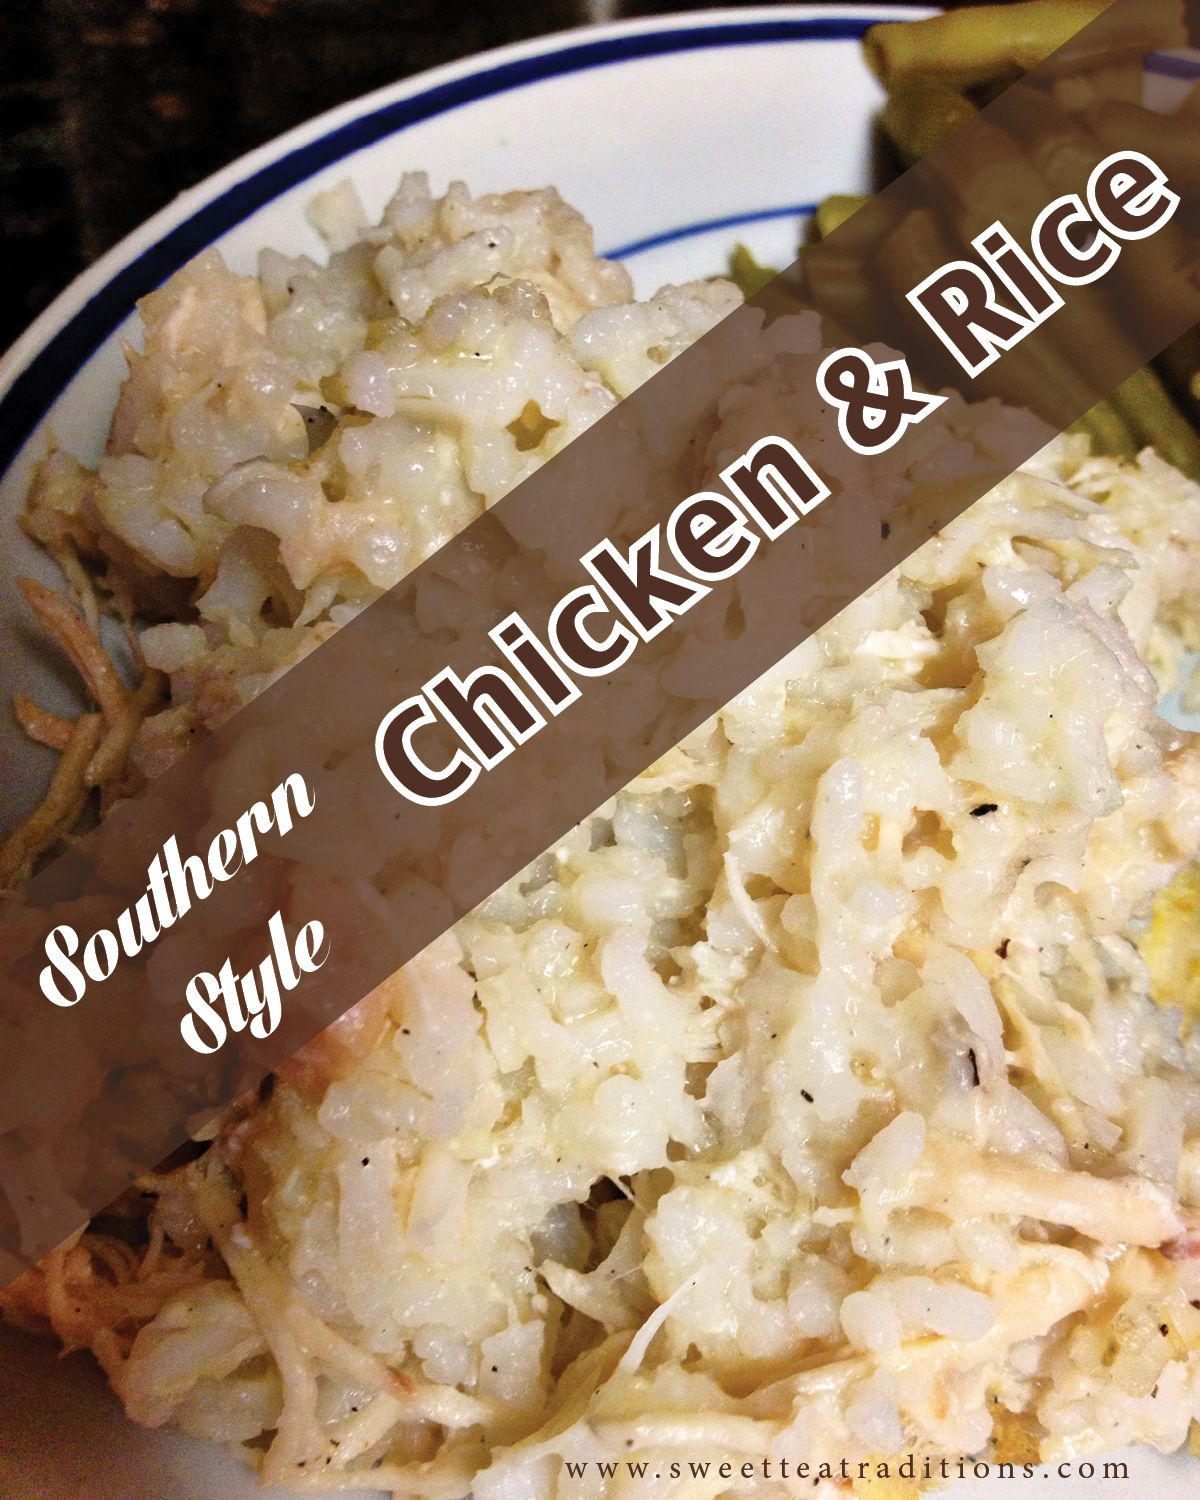 Sweet Tea Traditions Chicken And Rice Recipes Cooking Food